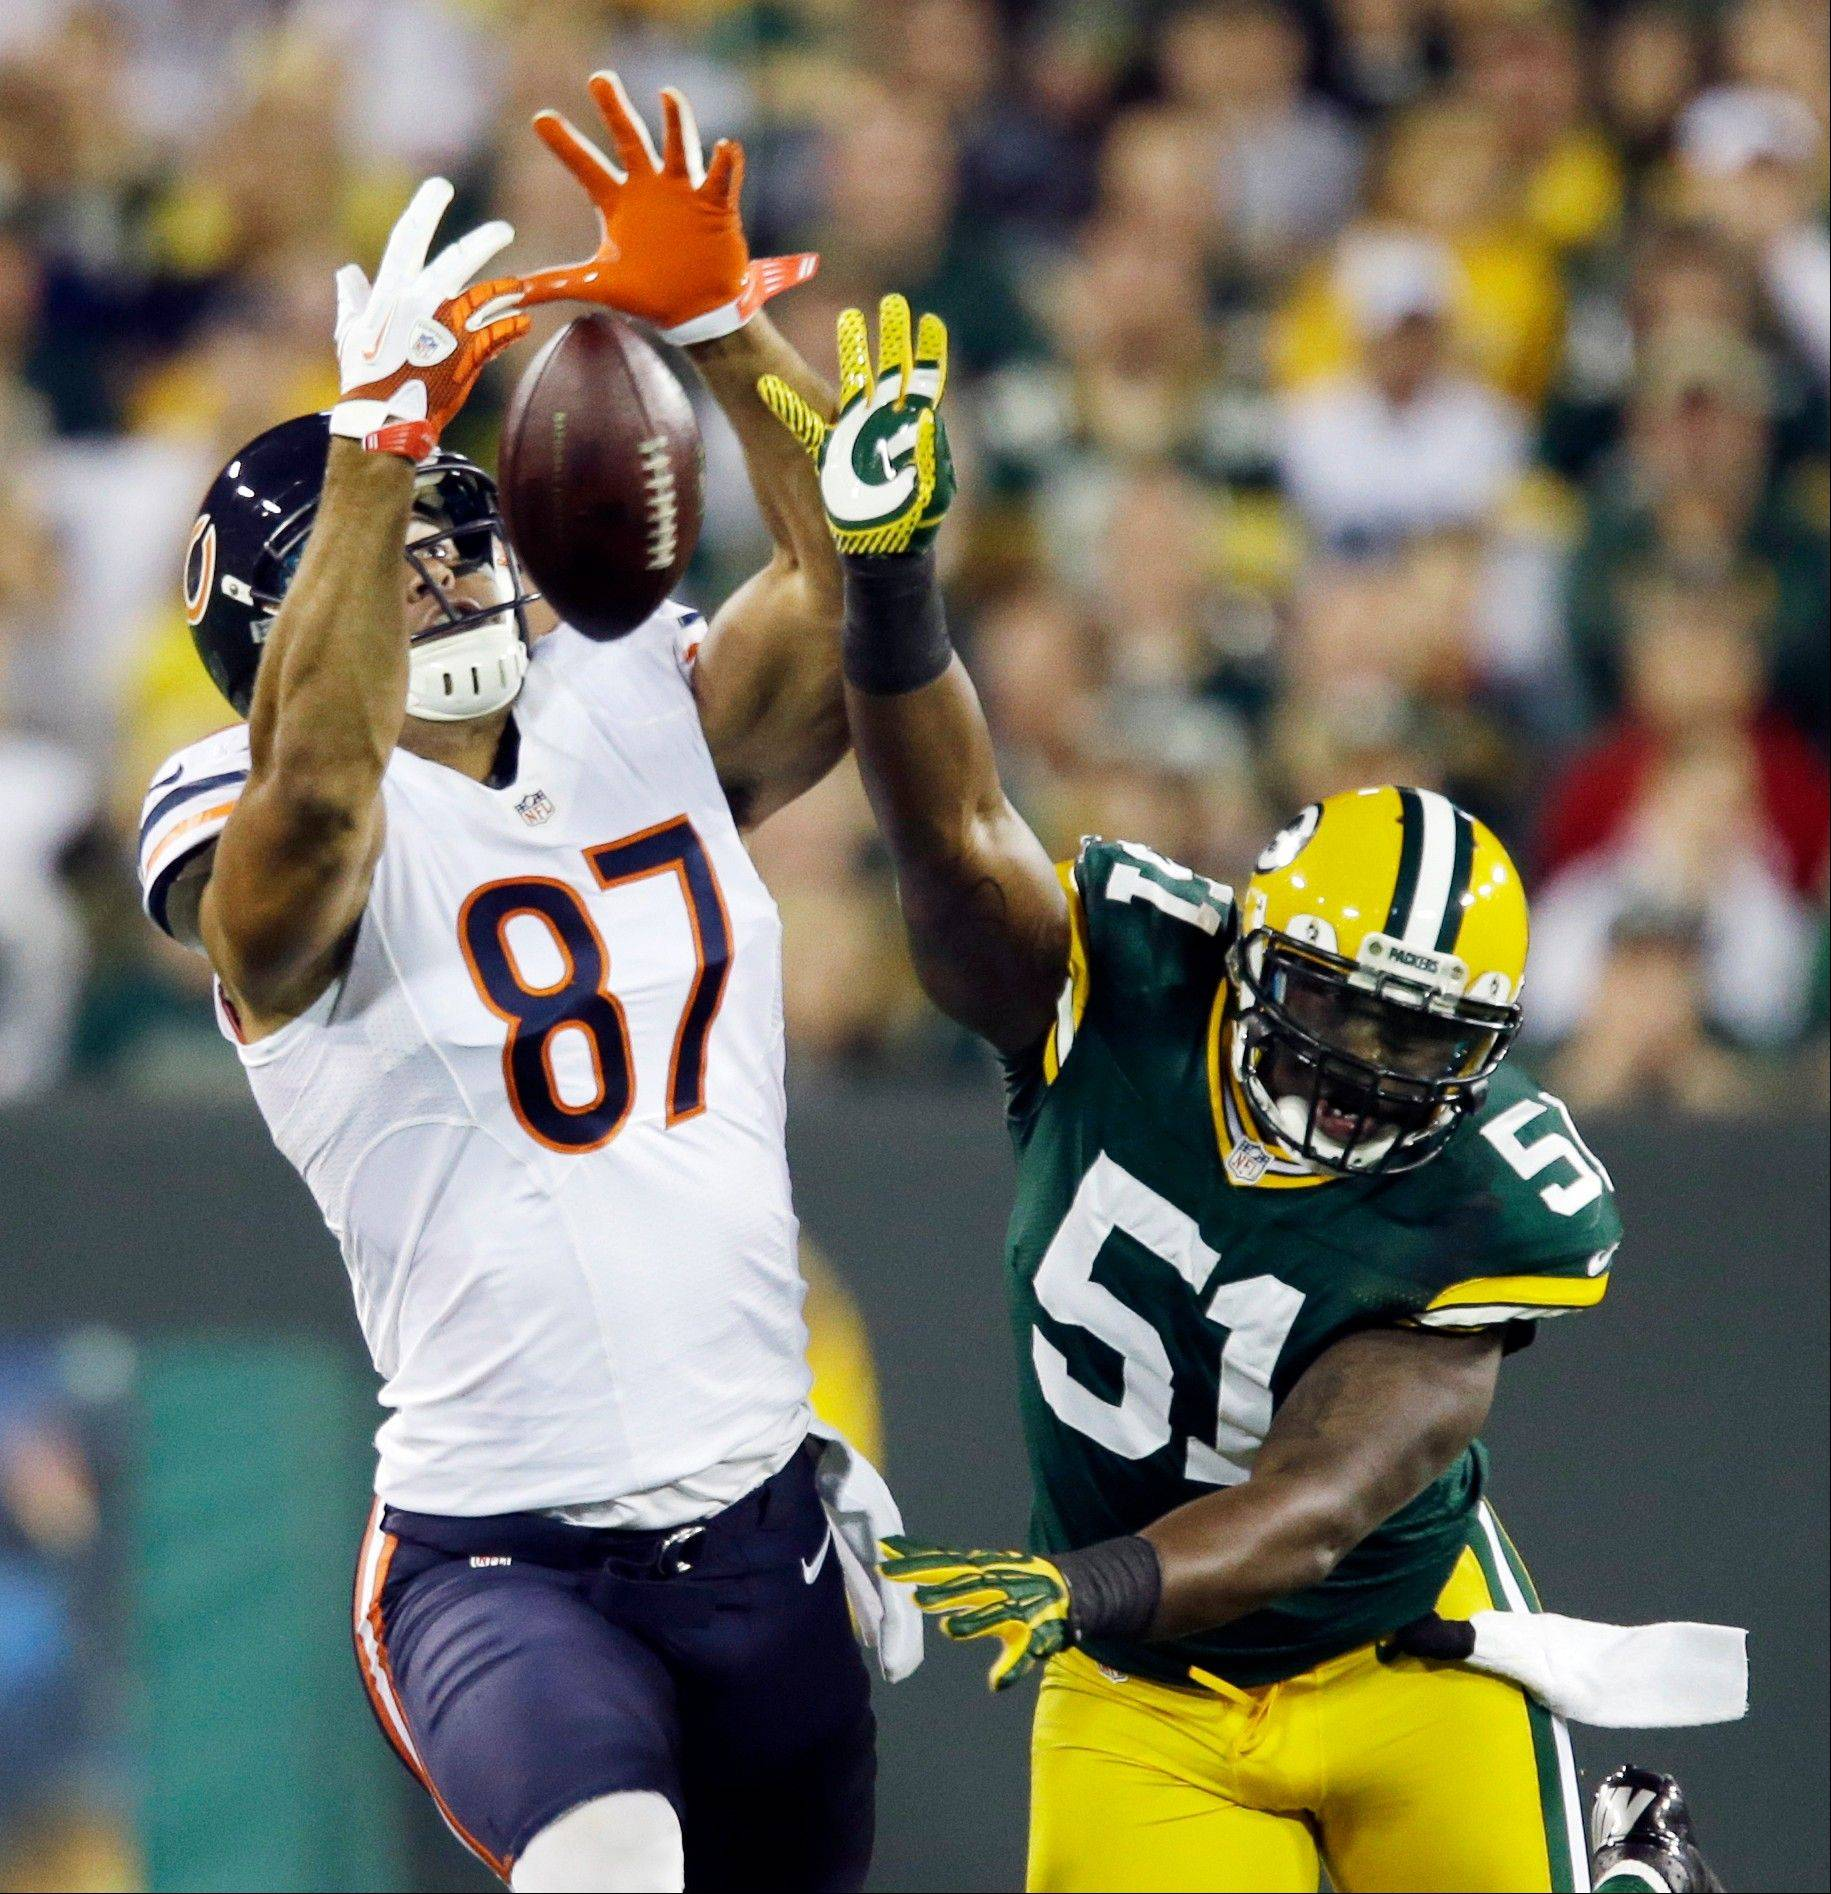 Green Bay Packers� D.J. Smith (51) breaks up a pass intended for the Bears� Kellen Davis (87) during the first half earlier this season in Green Bay, Wis.